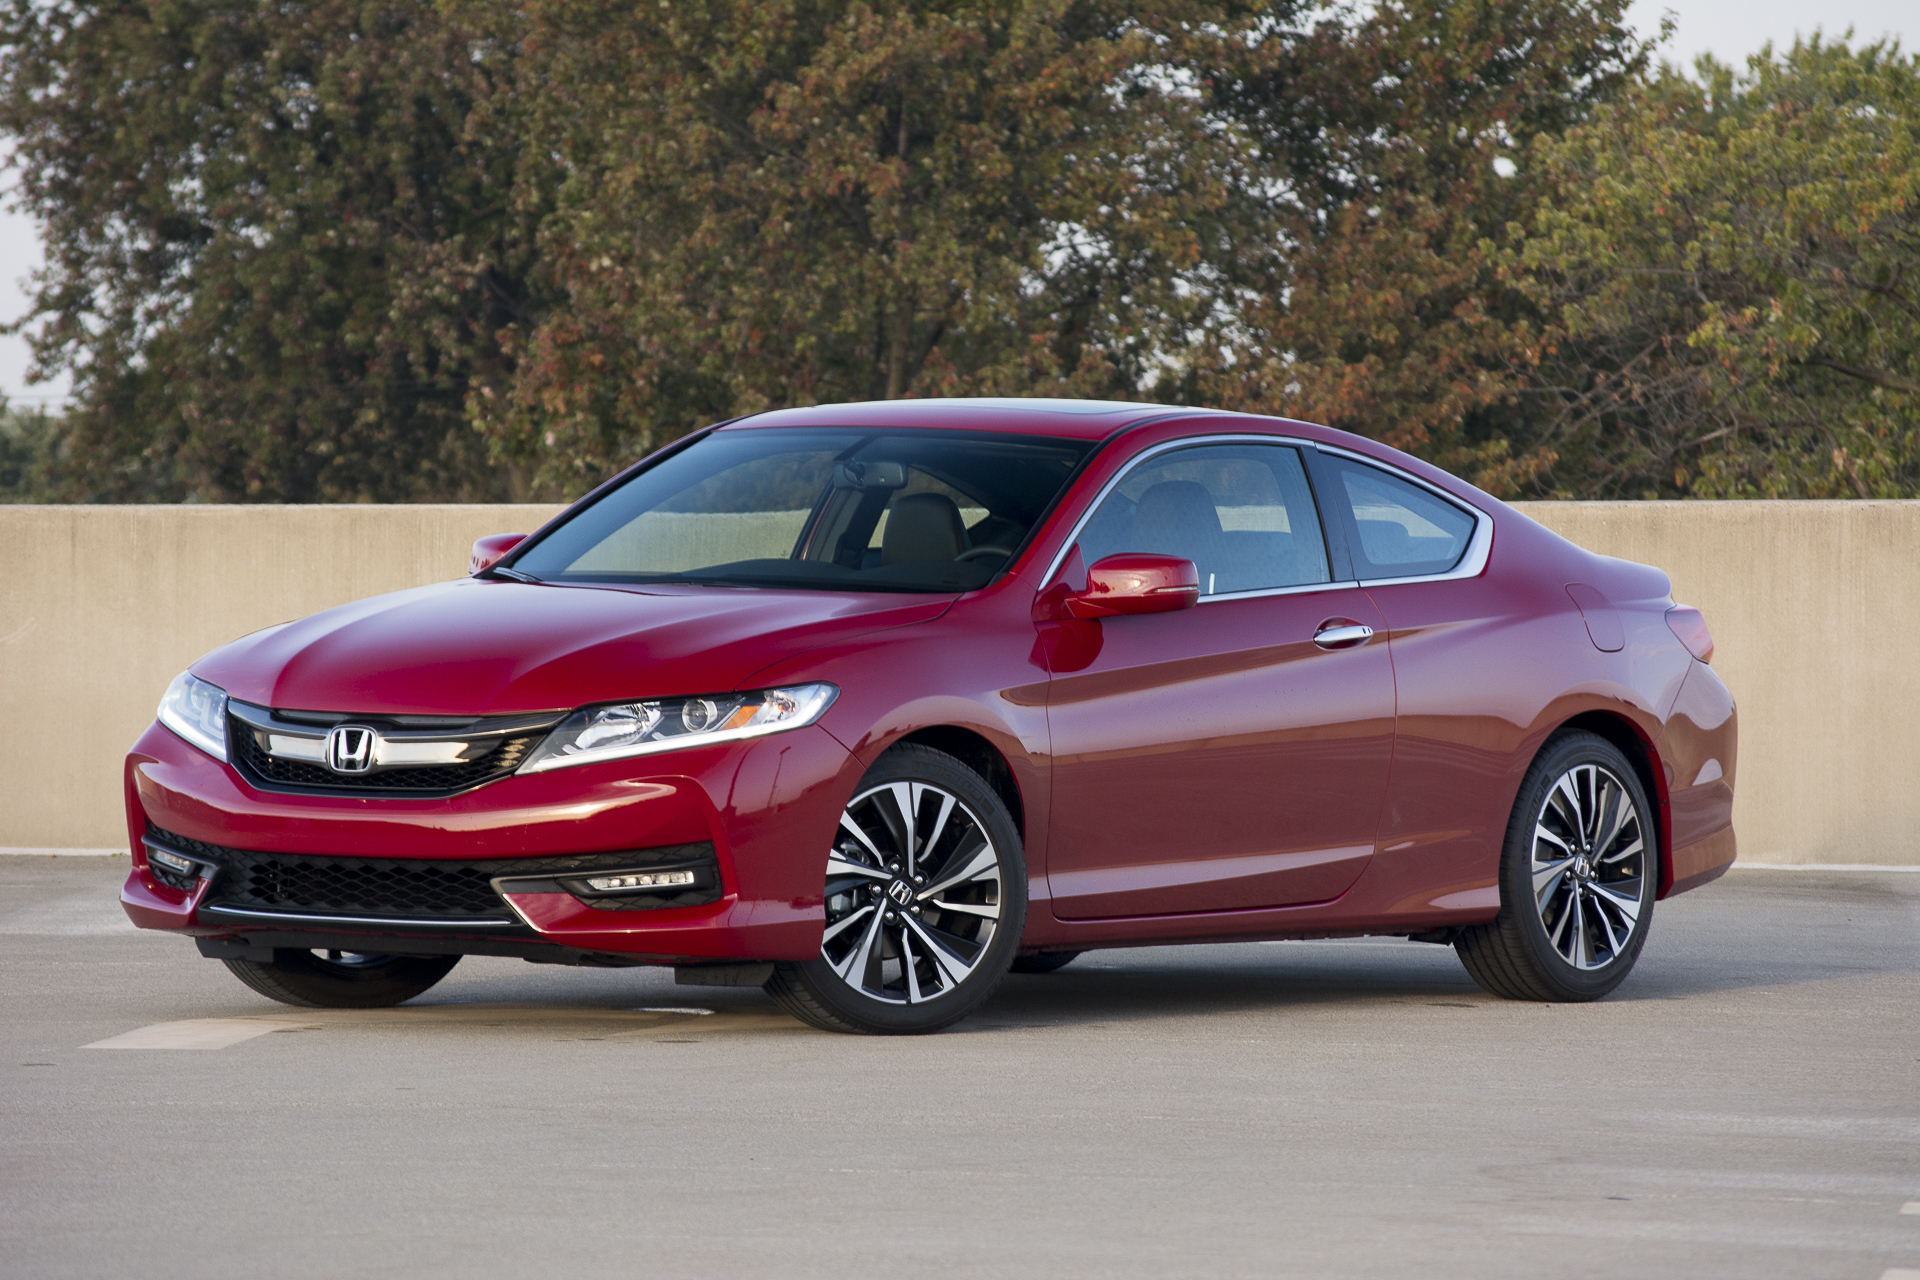 check out the 2016 honda accord coupe v6 see more here. Black Bedroom Furniture Sets. Home Design Ideas